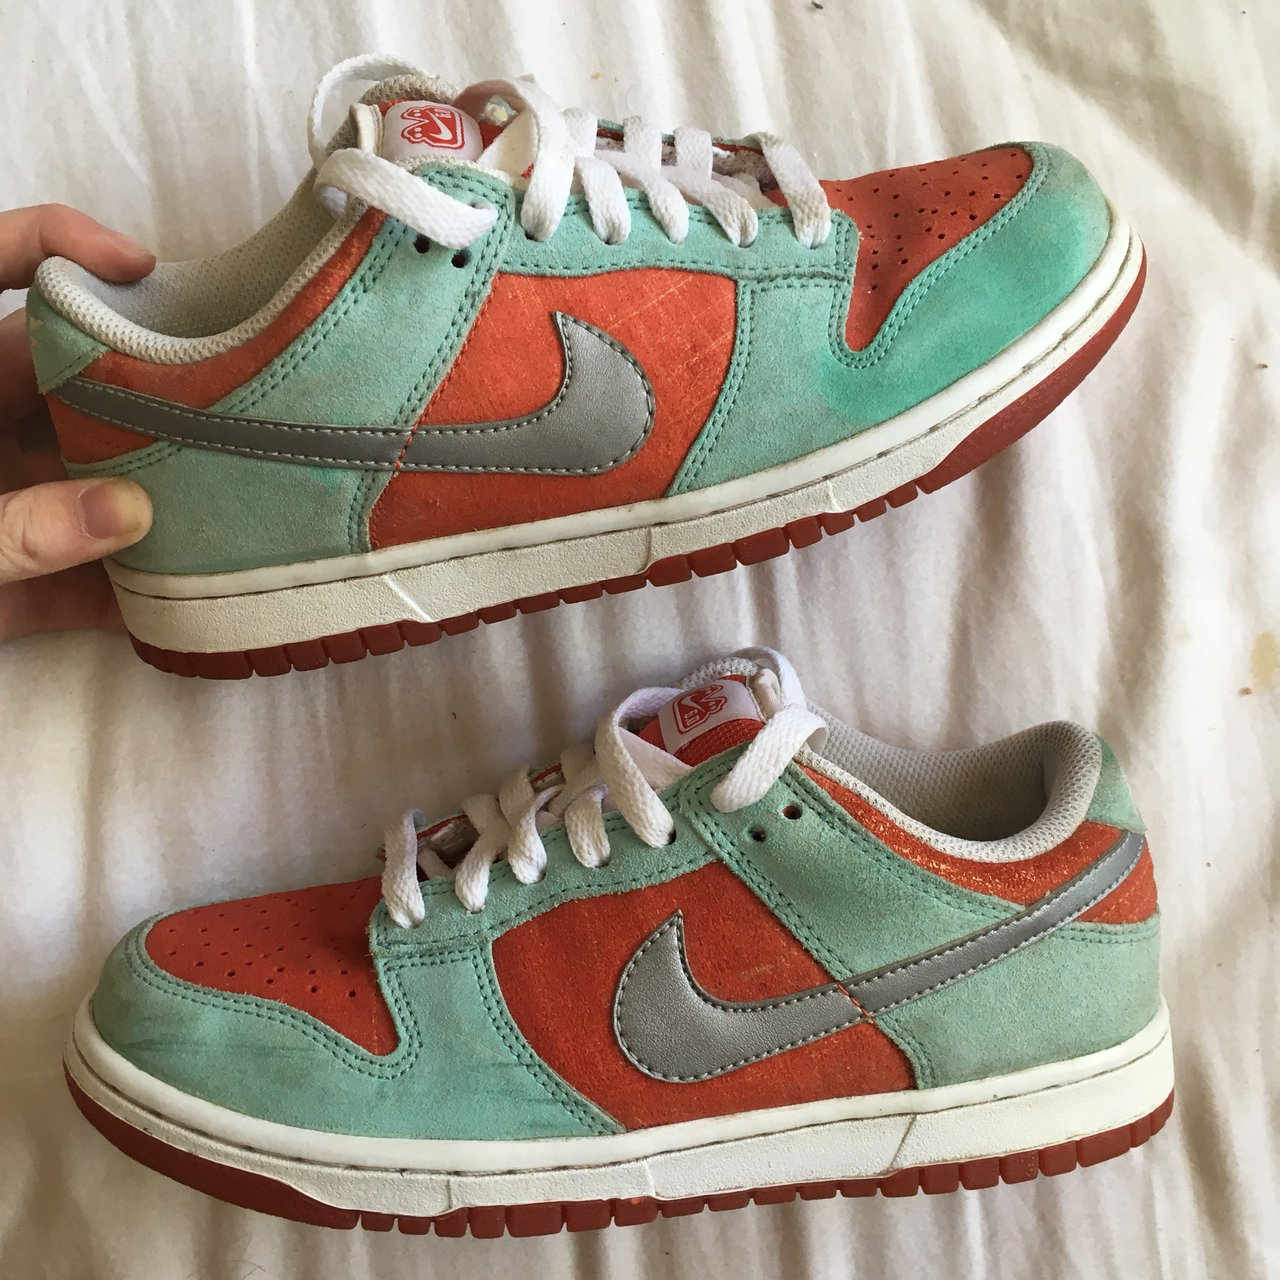 Green   Turquoise and Orange Nike Dunk Low Trainers    UK    - Depop 358c91154